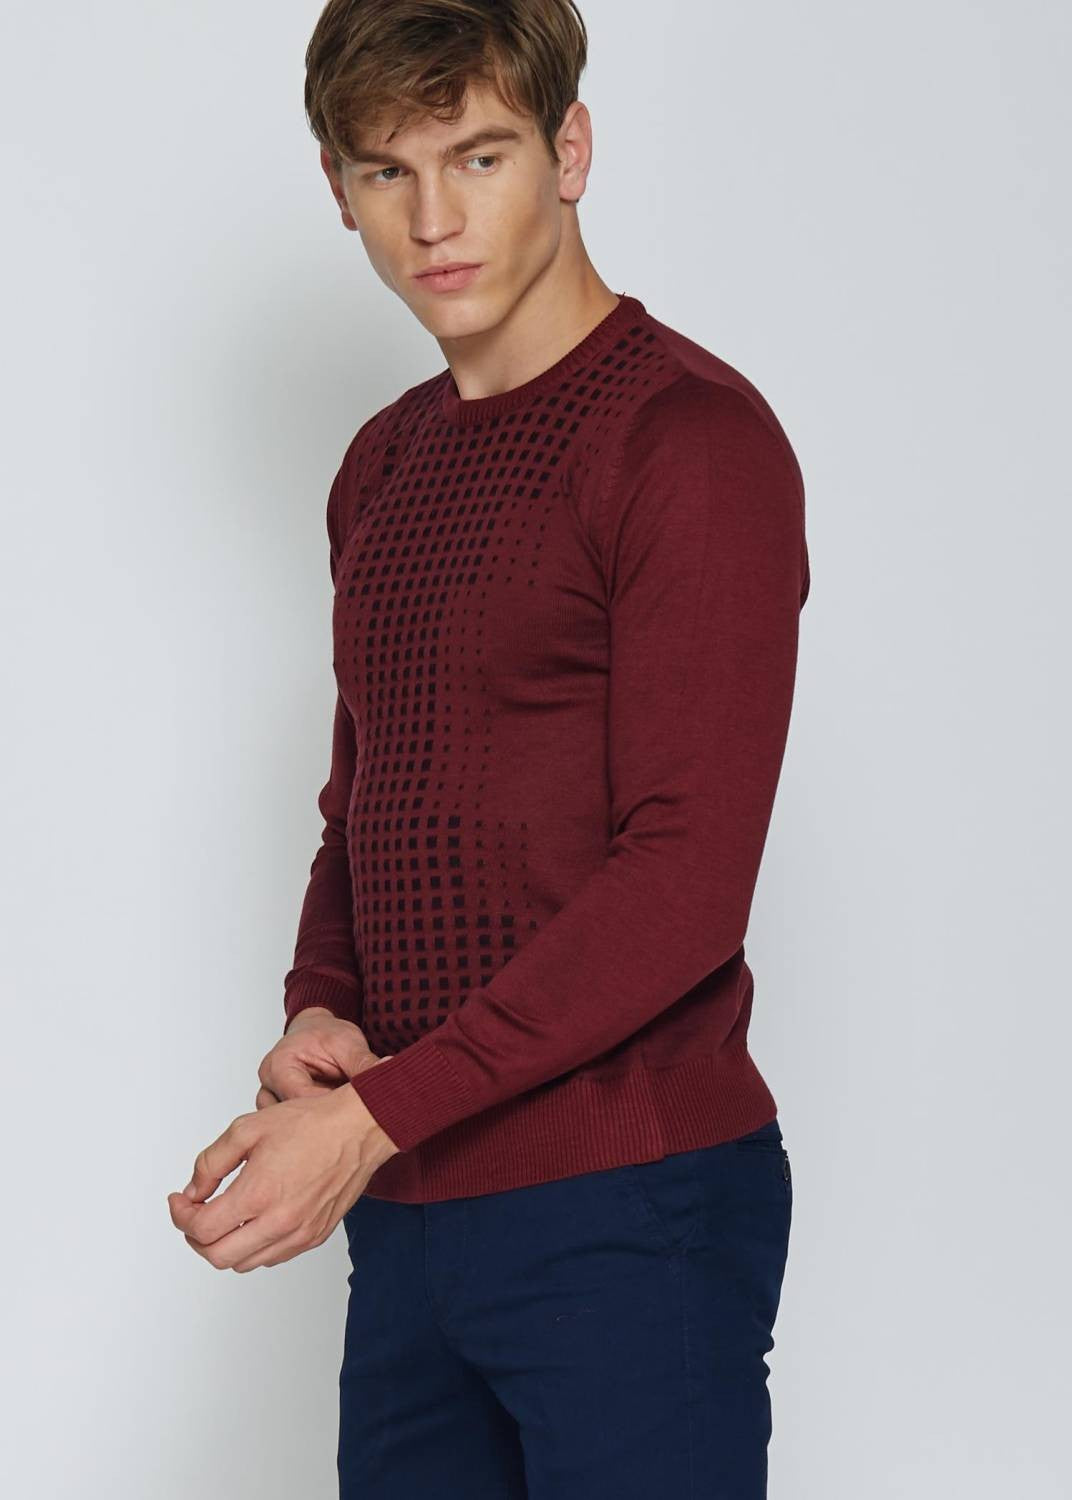 Men's Crew Neck Patterned  Red Black Pullover - THE UNIQUE FIT